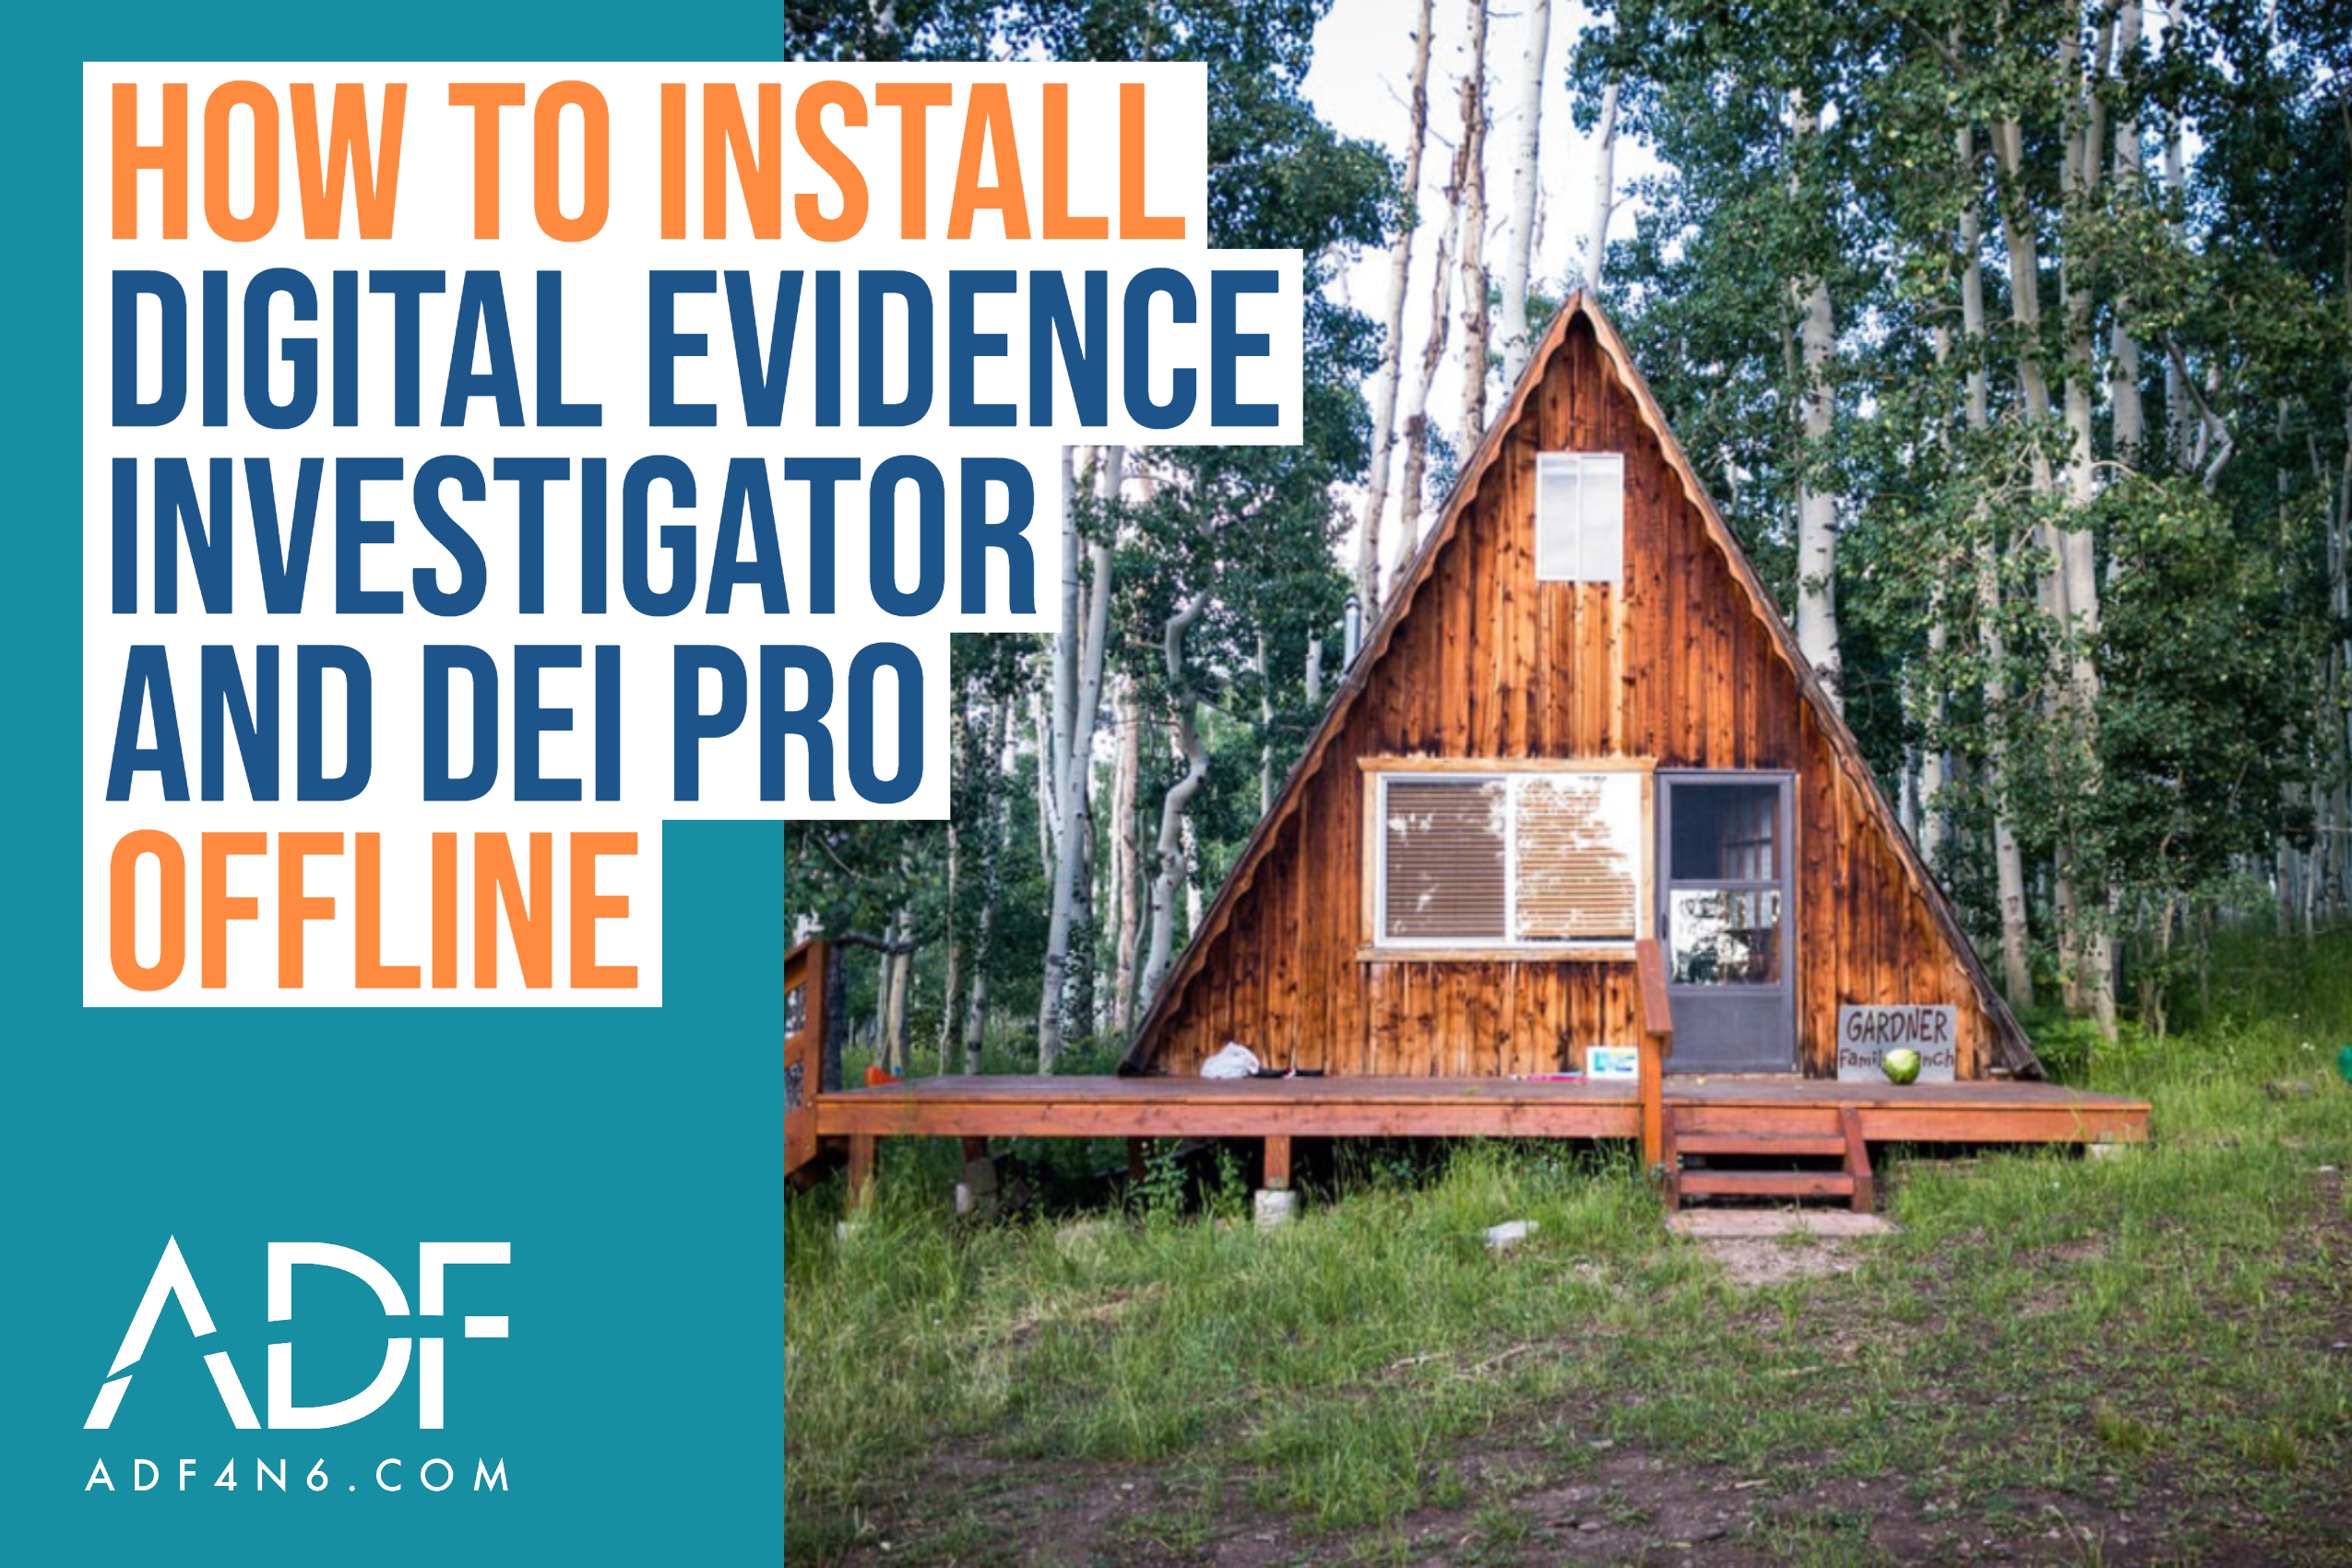 How to Install Digital Evidence Investigator and DEI PRO Offline